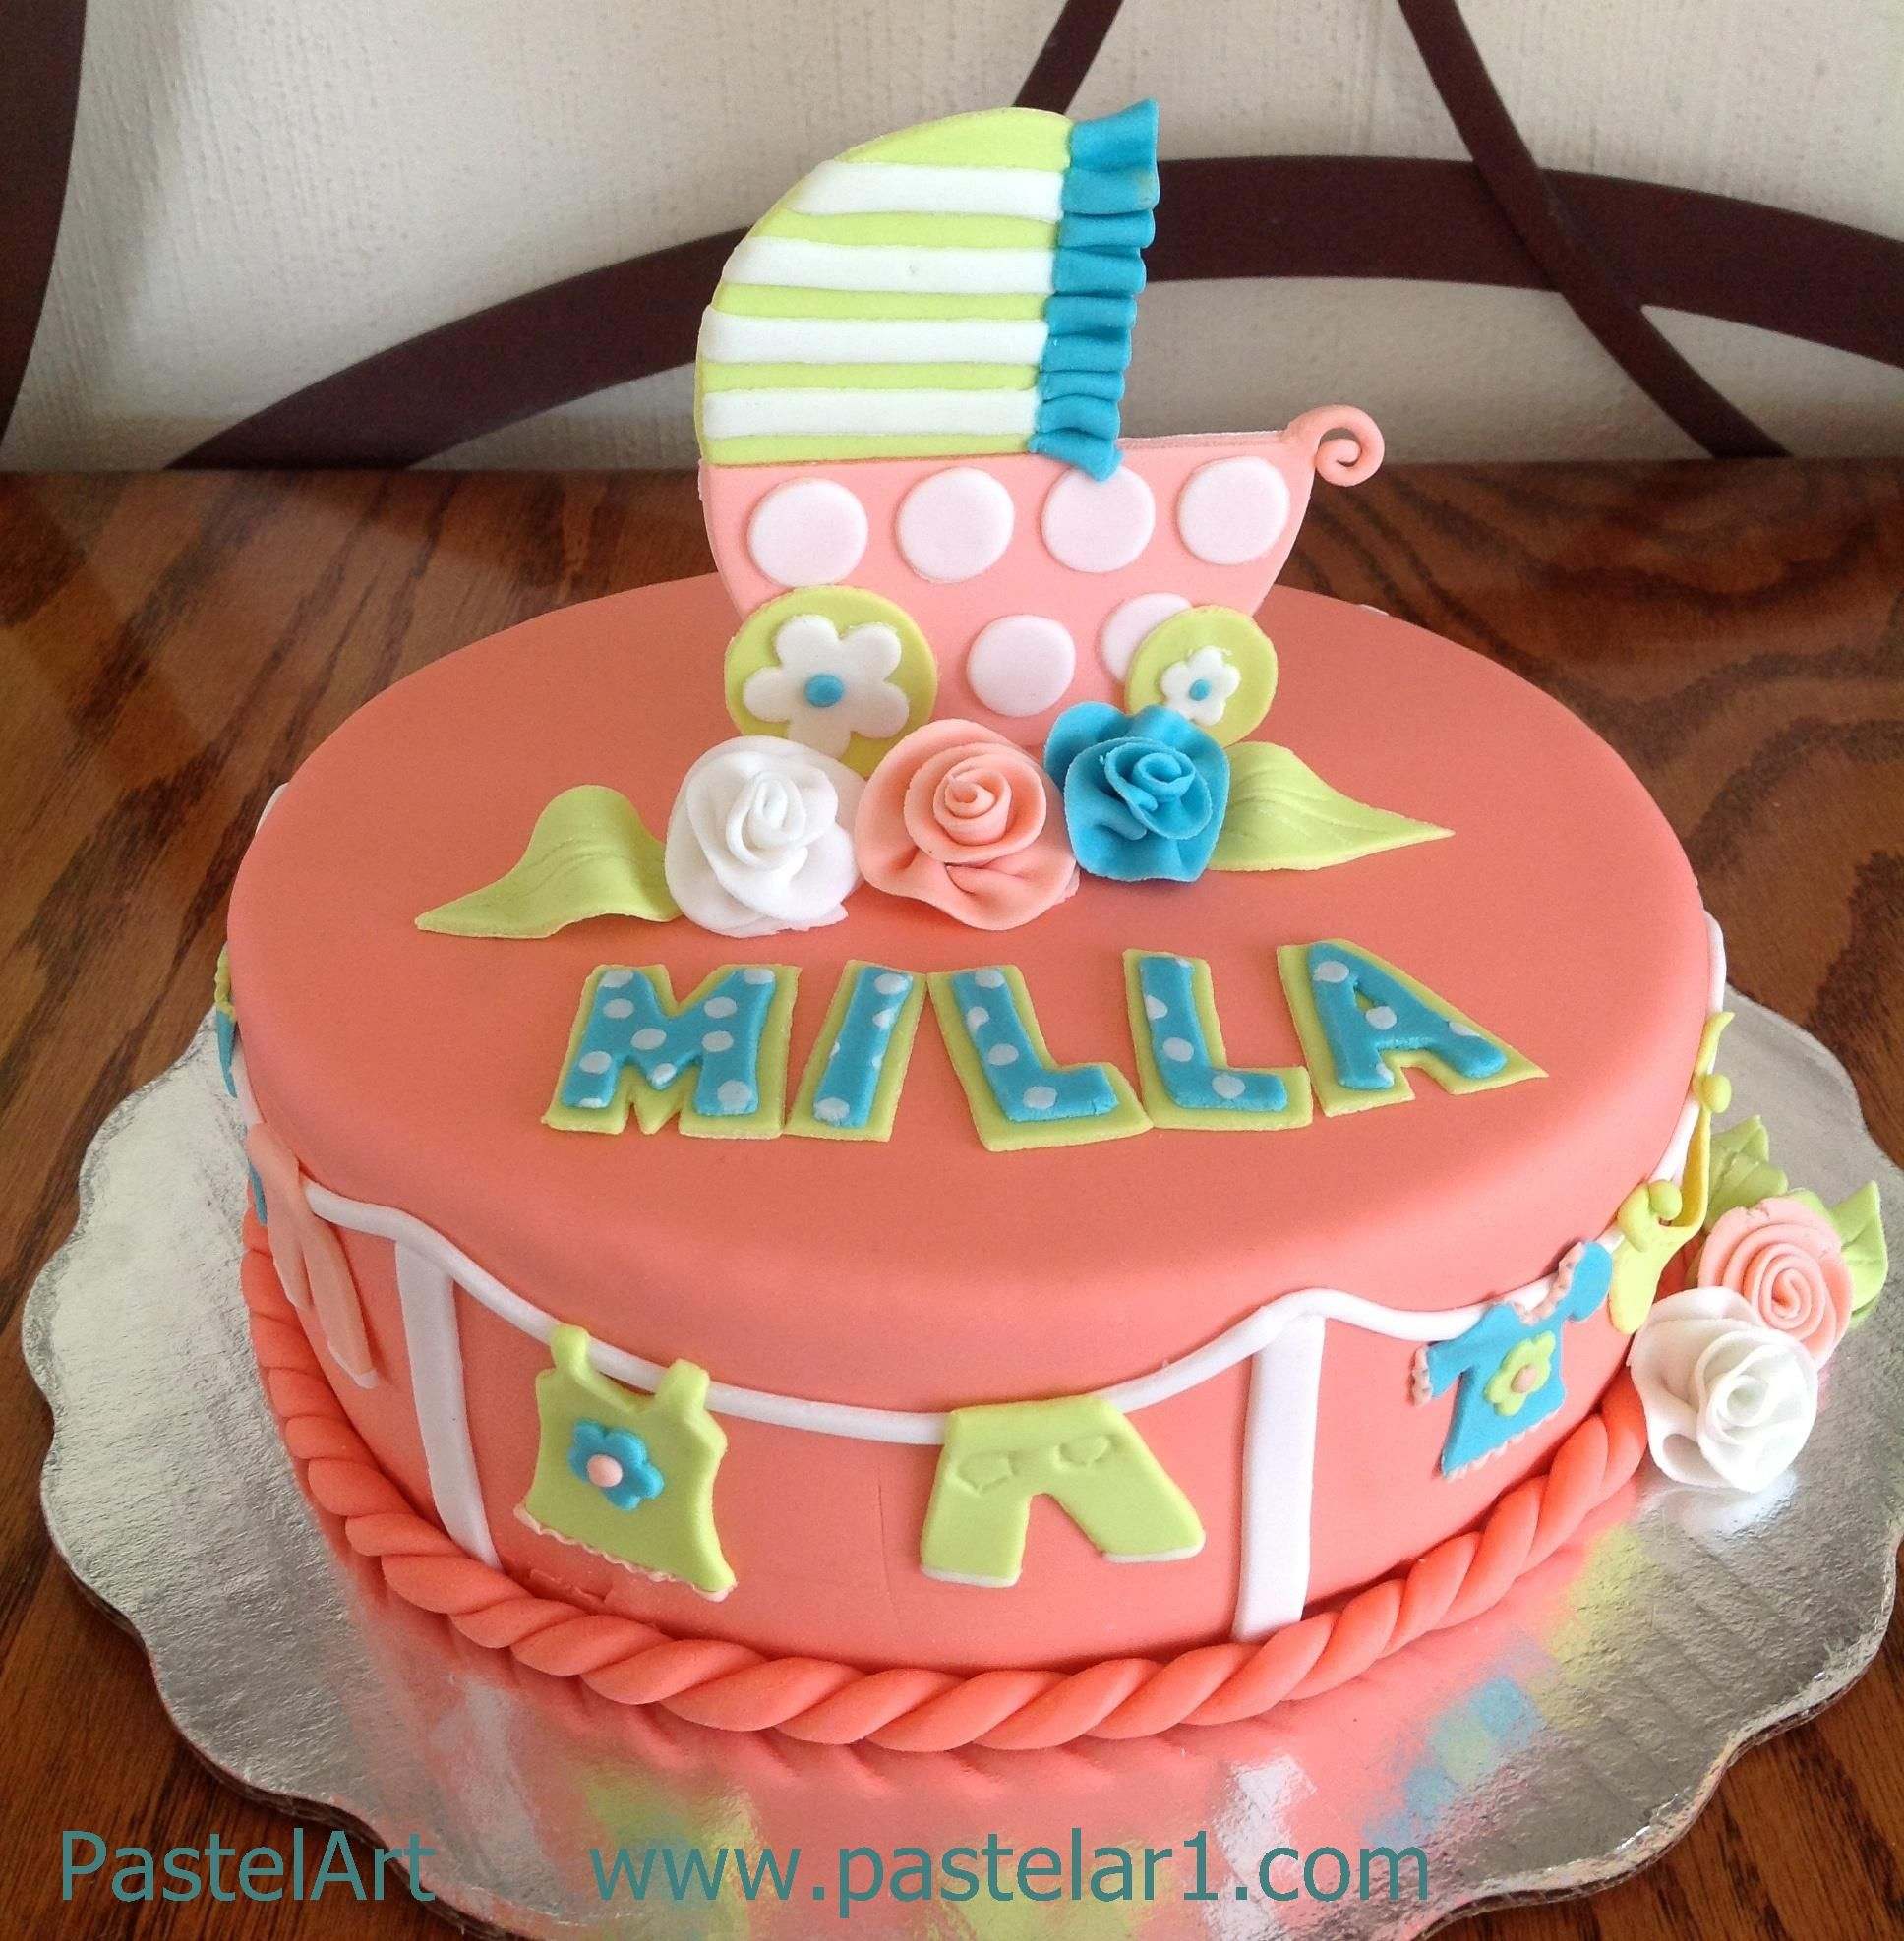 Pin By Lily Combe On Bebes Baby Showers Y Bautizo Baby Shower Cakes Shower Cakes Baby Shower